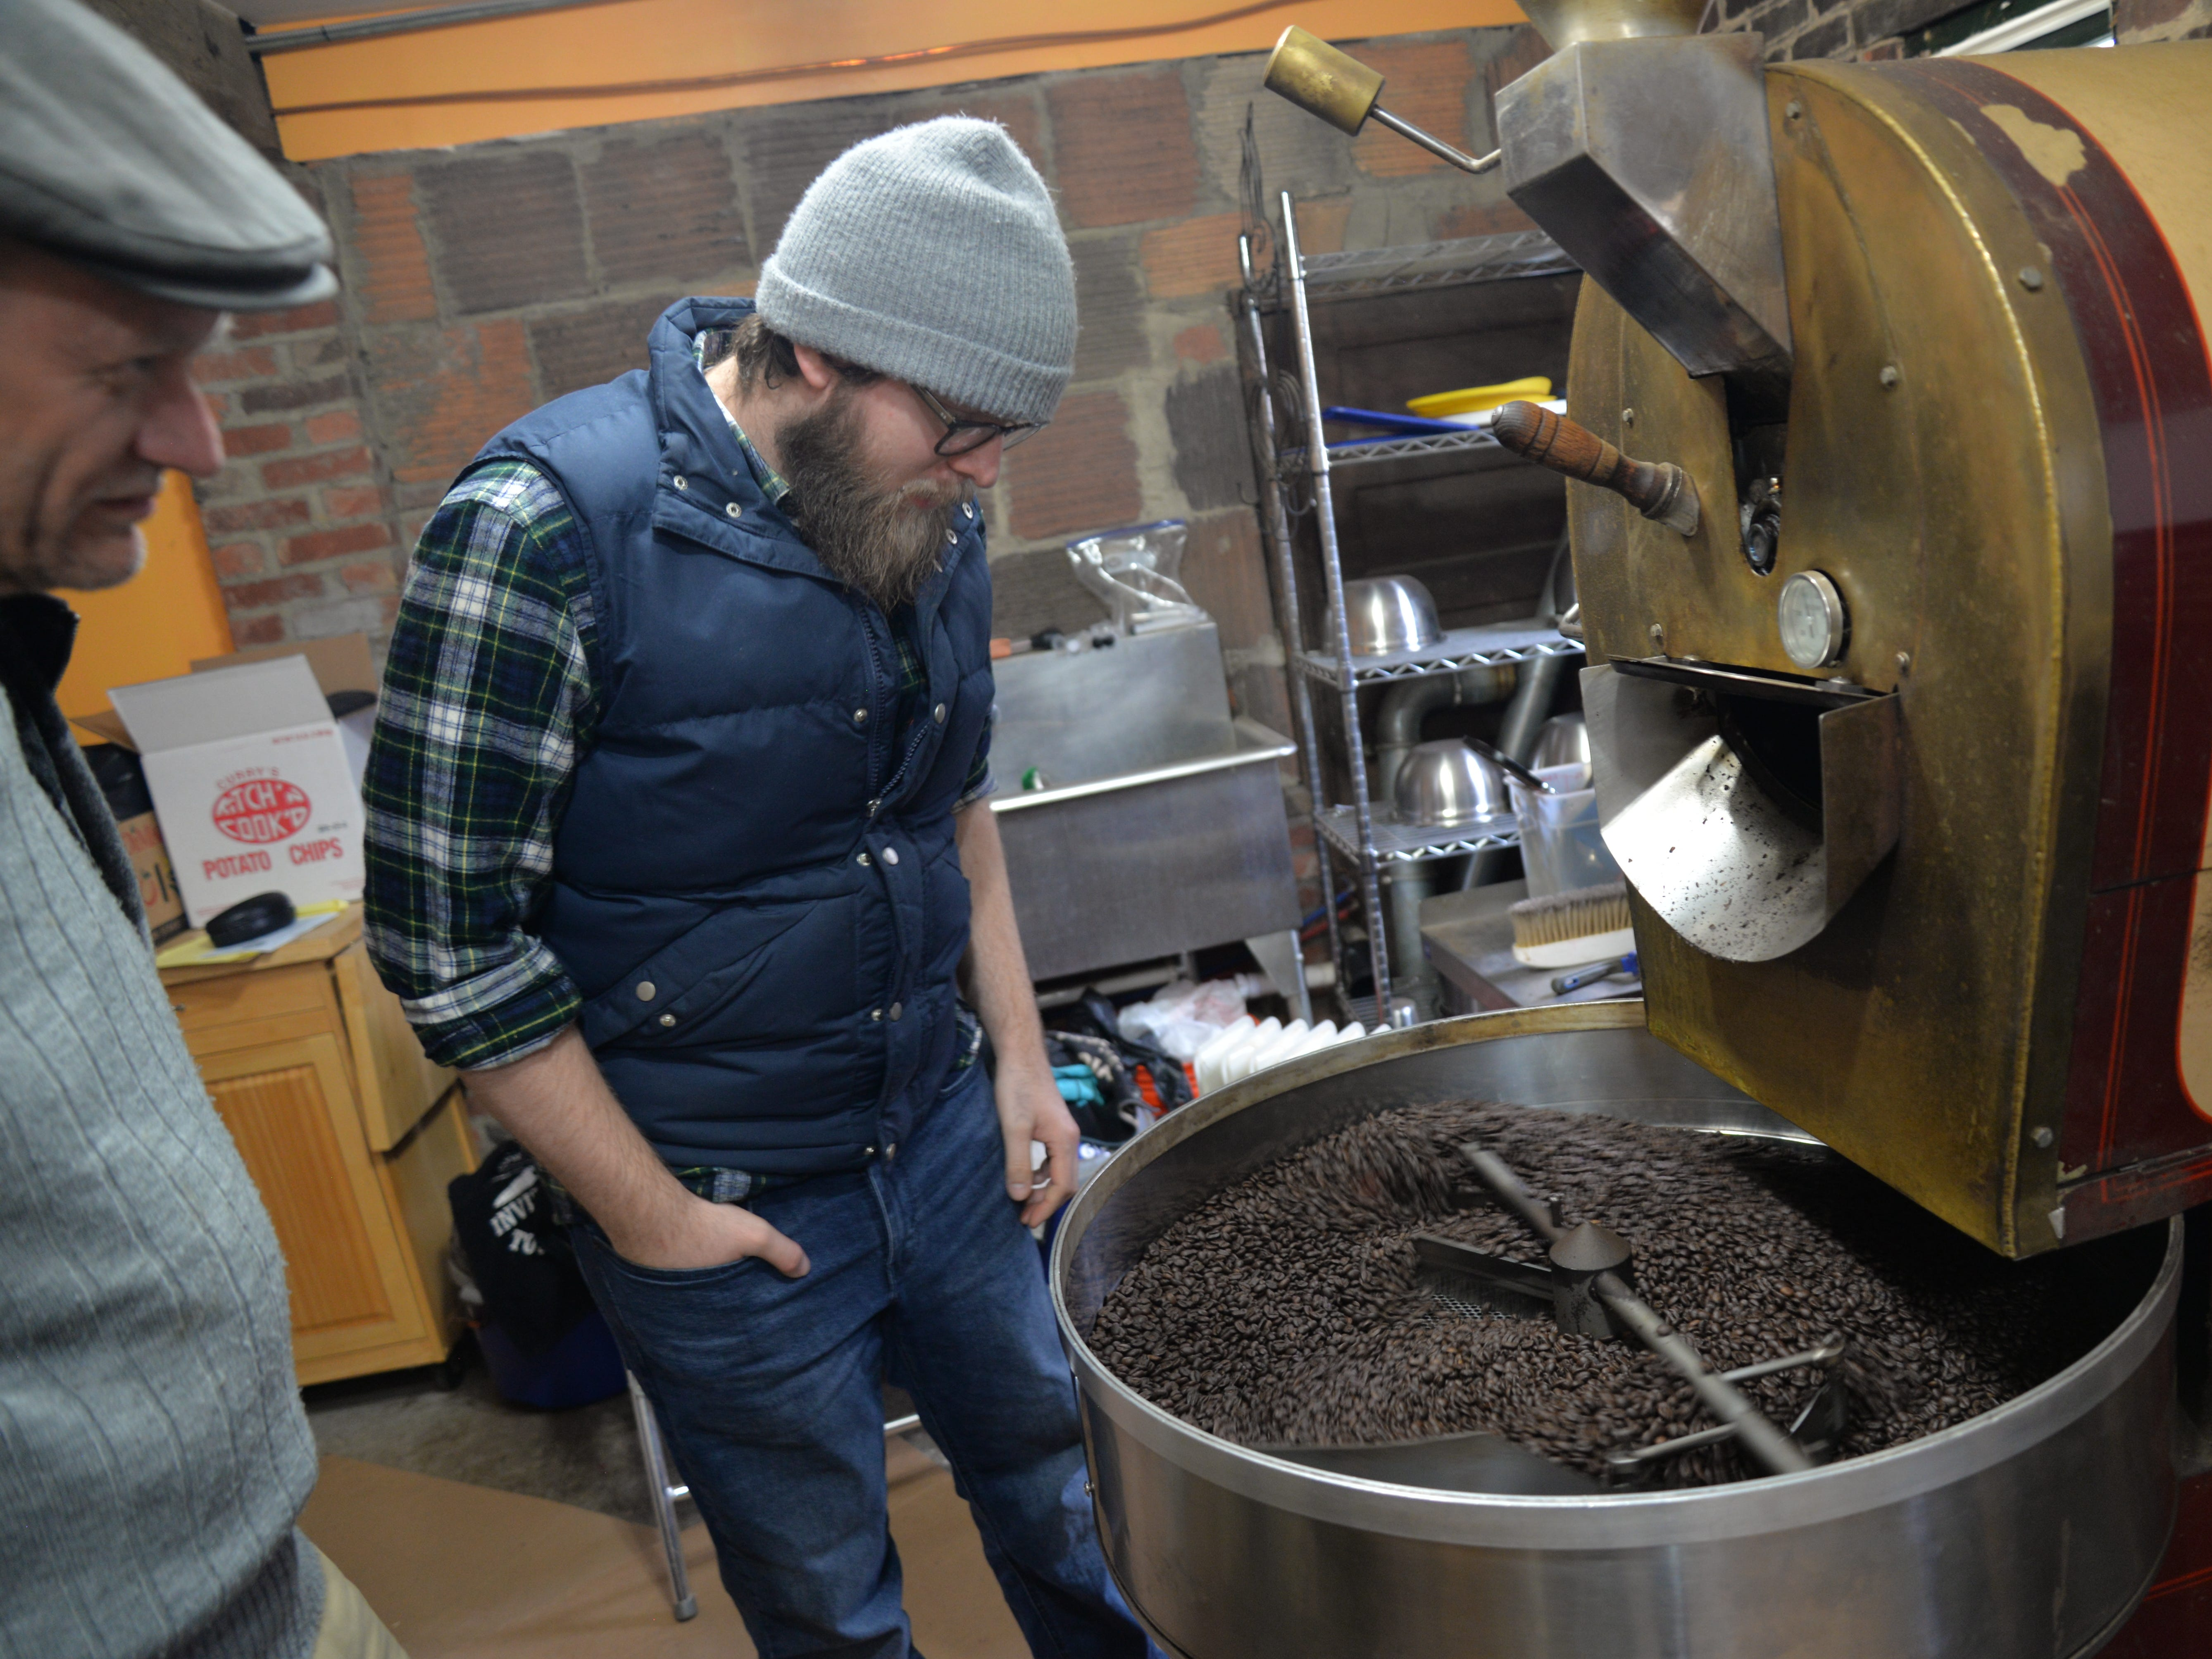 Cranberry's owner Joseph White purchased Staunton Coffee Company in mid-2018. He brought on a new roaster and general manager Beau Lafon and is planning to expand the company's footprint in the Shenandoah Valley.